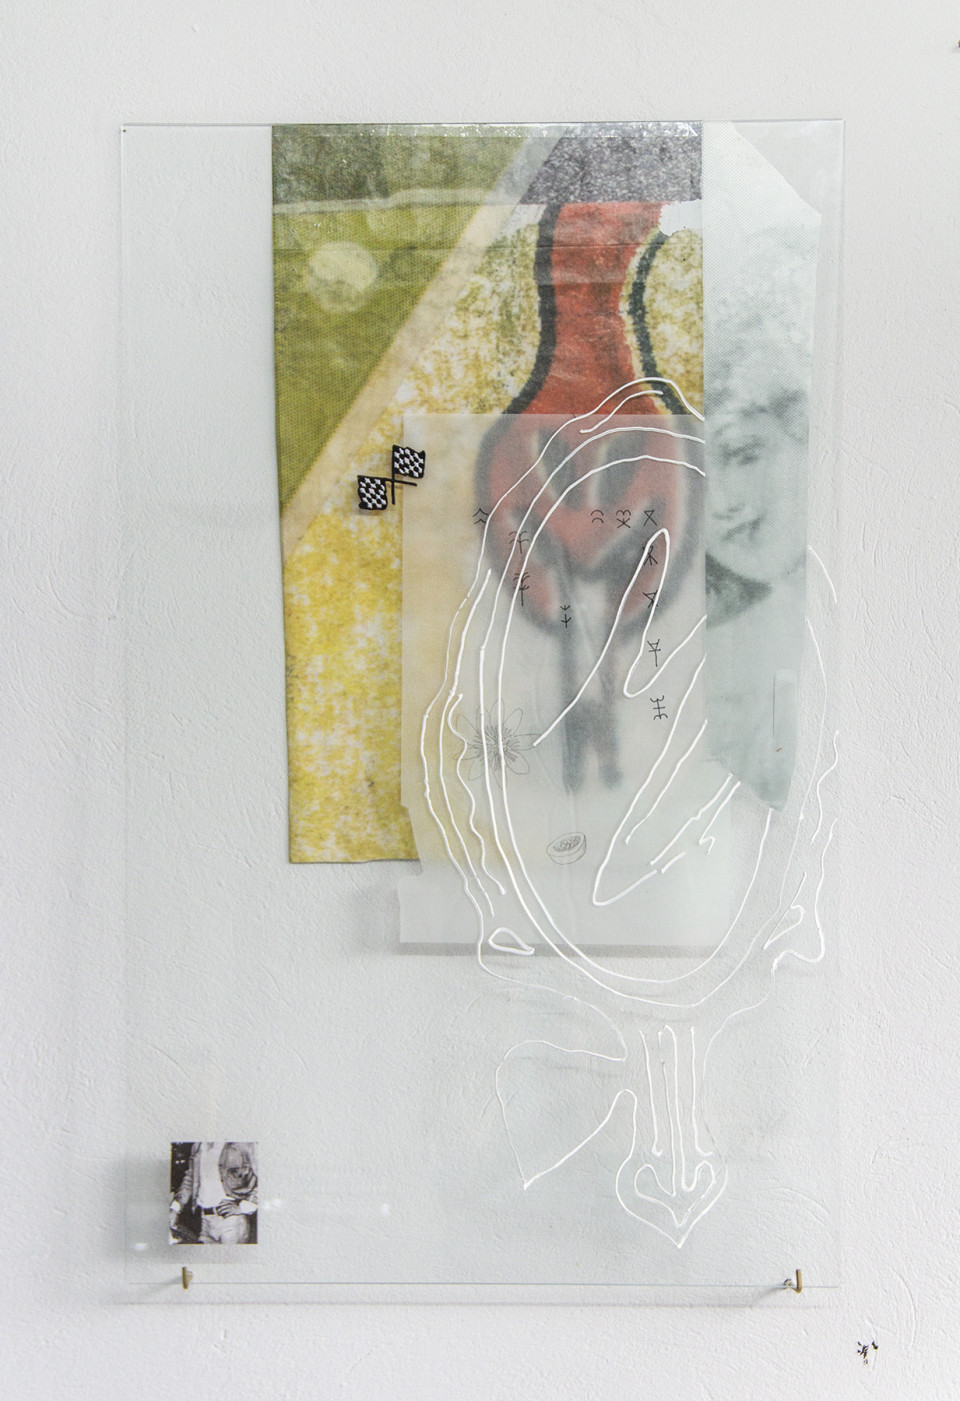 Nana Mandl my very own muse I, 2019 mixed media on glass 80 x 50 cm 31 1/2 x 19 3/4 in